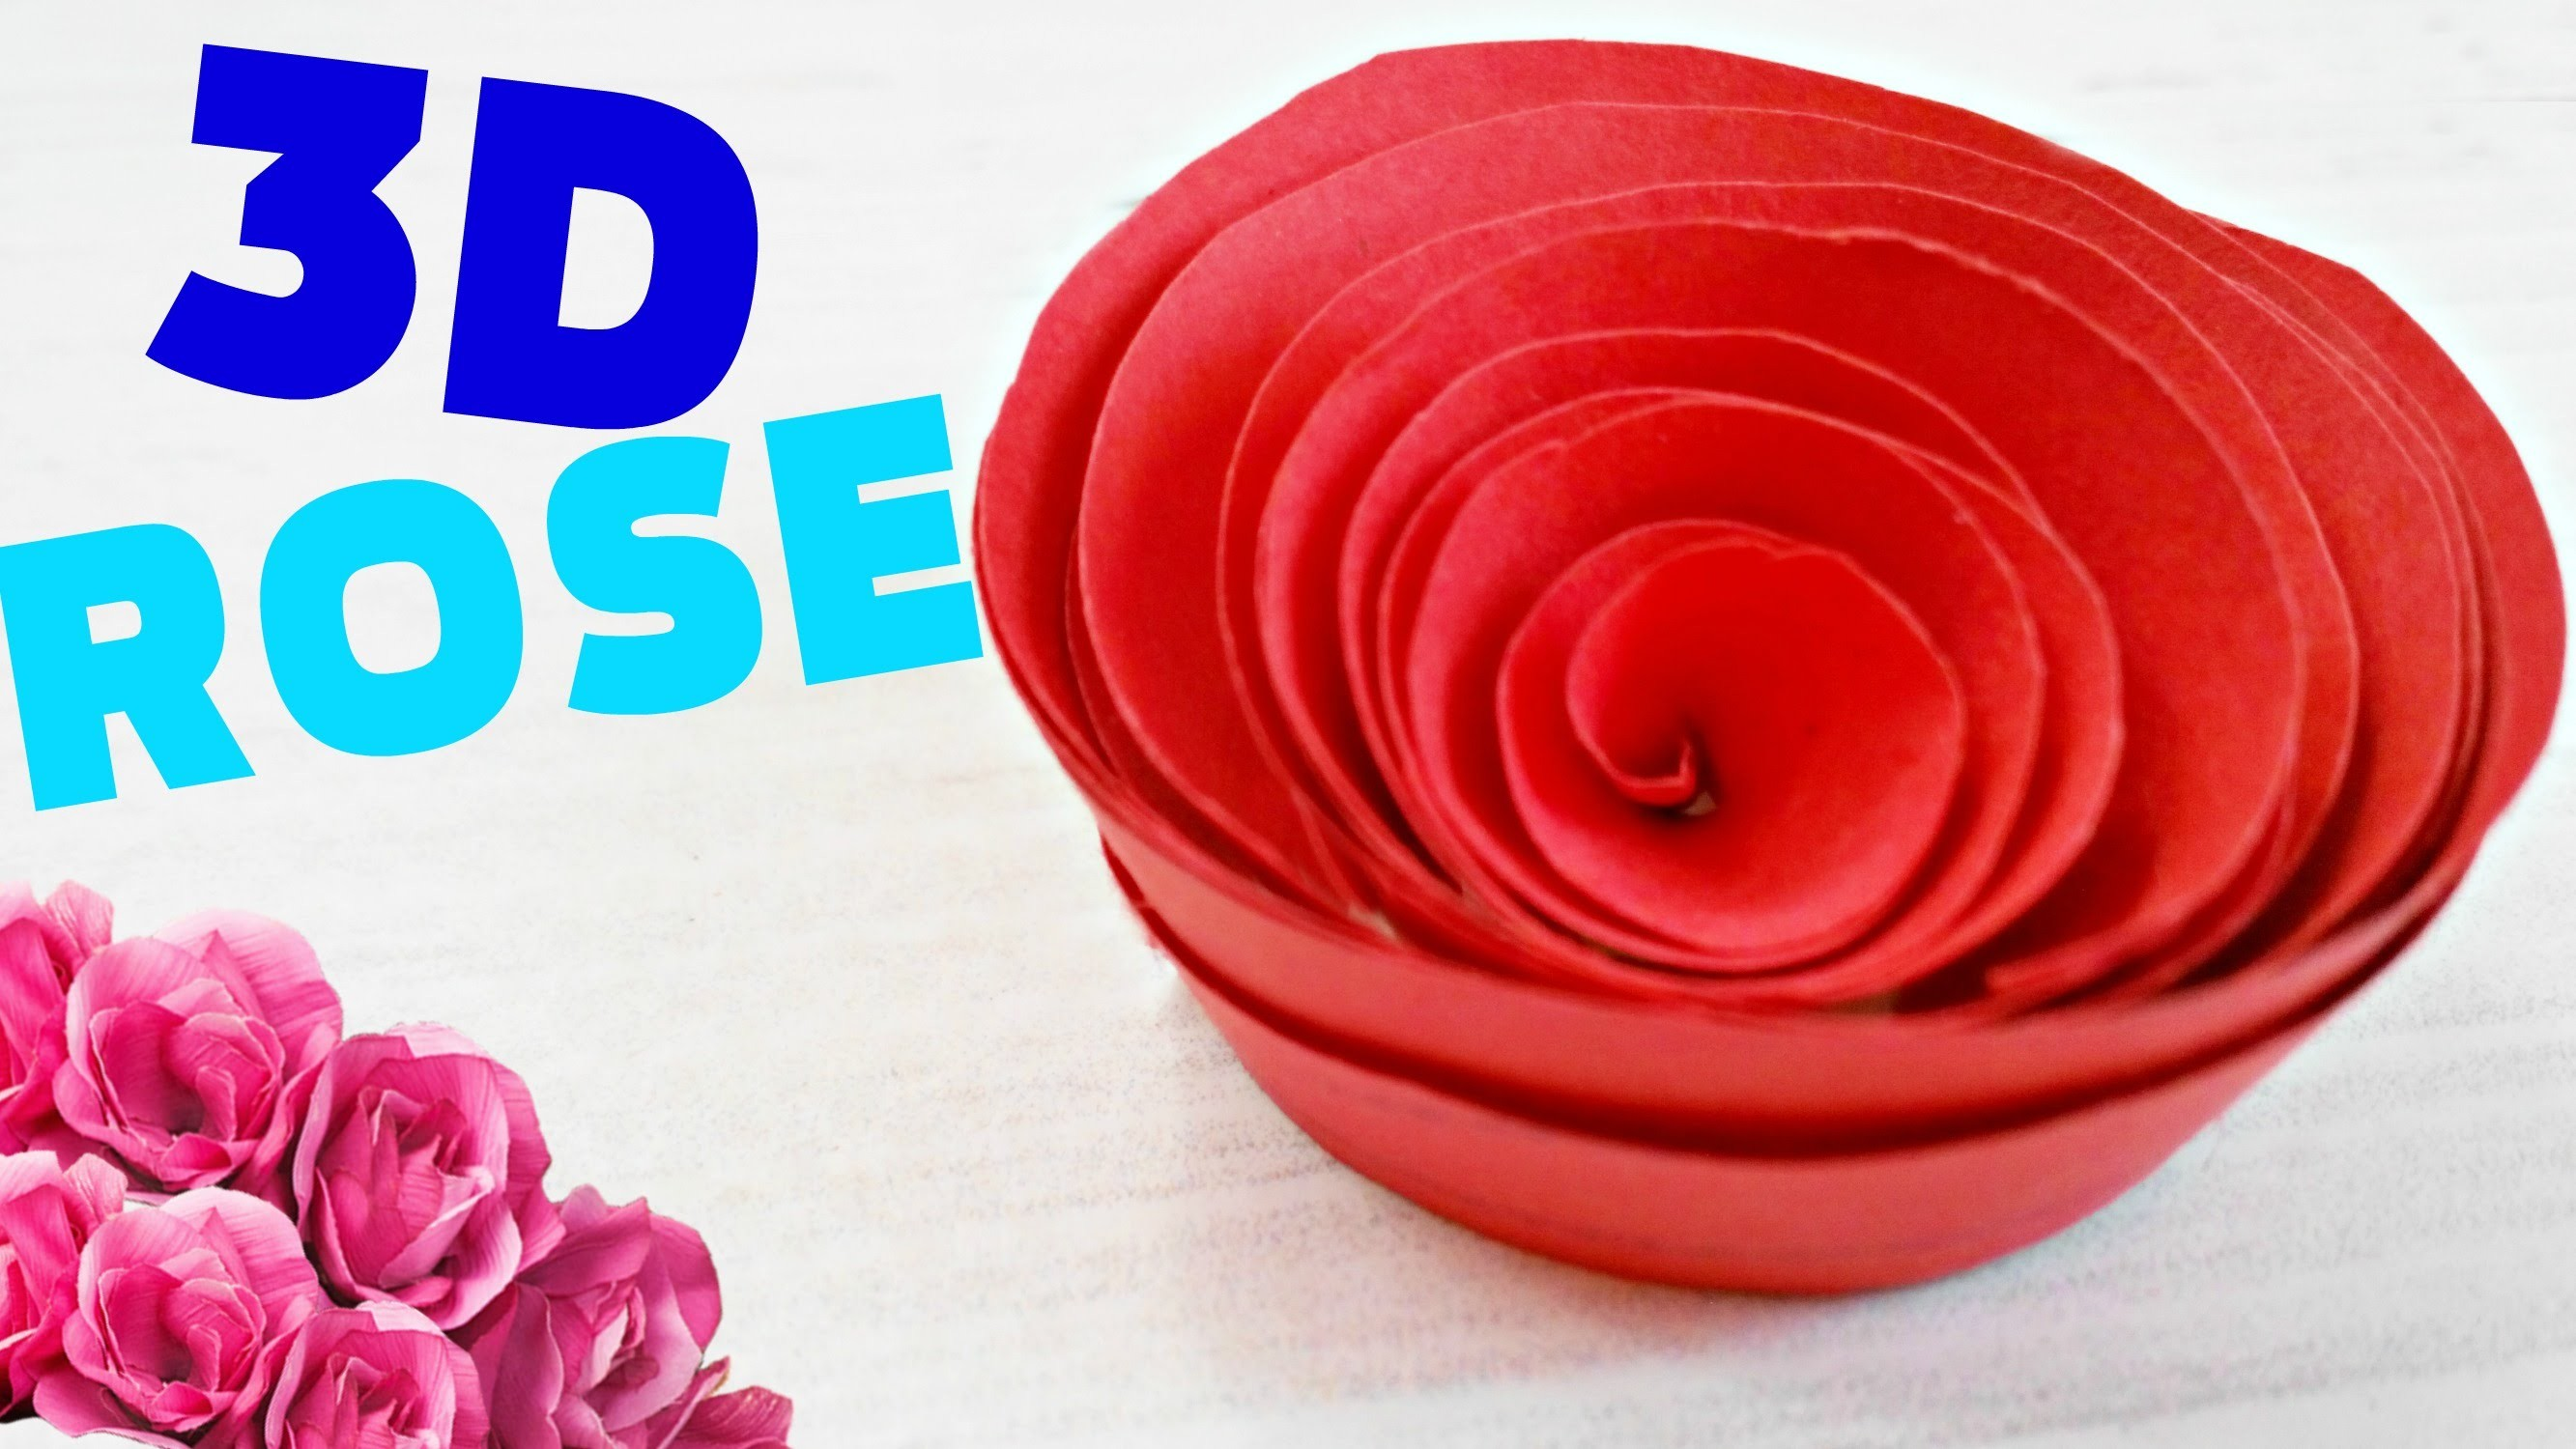 How to make a flowerrose out of paper origami easy steps for kids for beginners